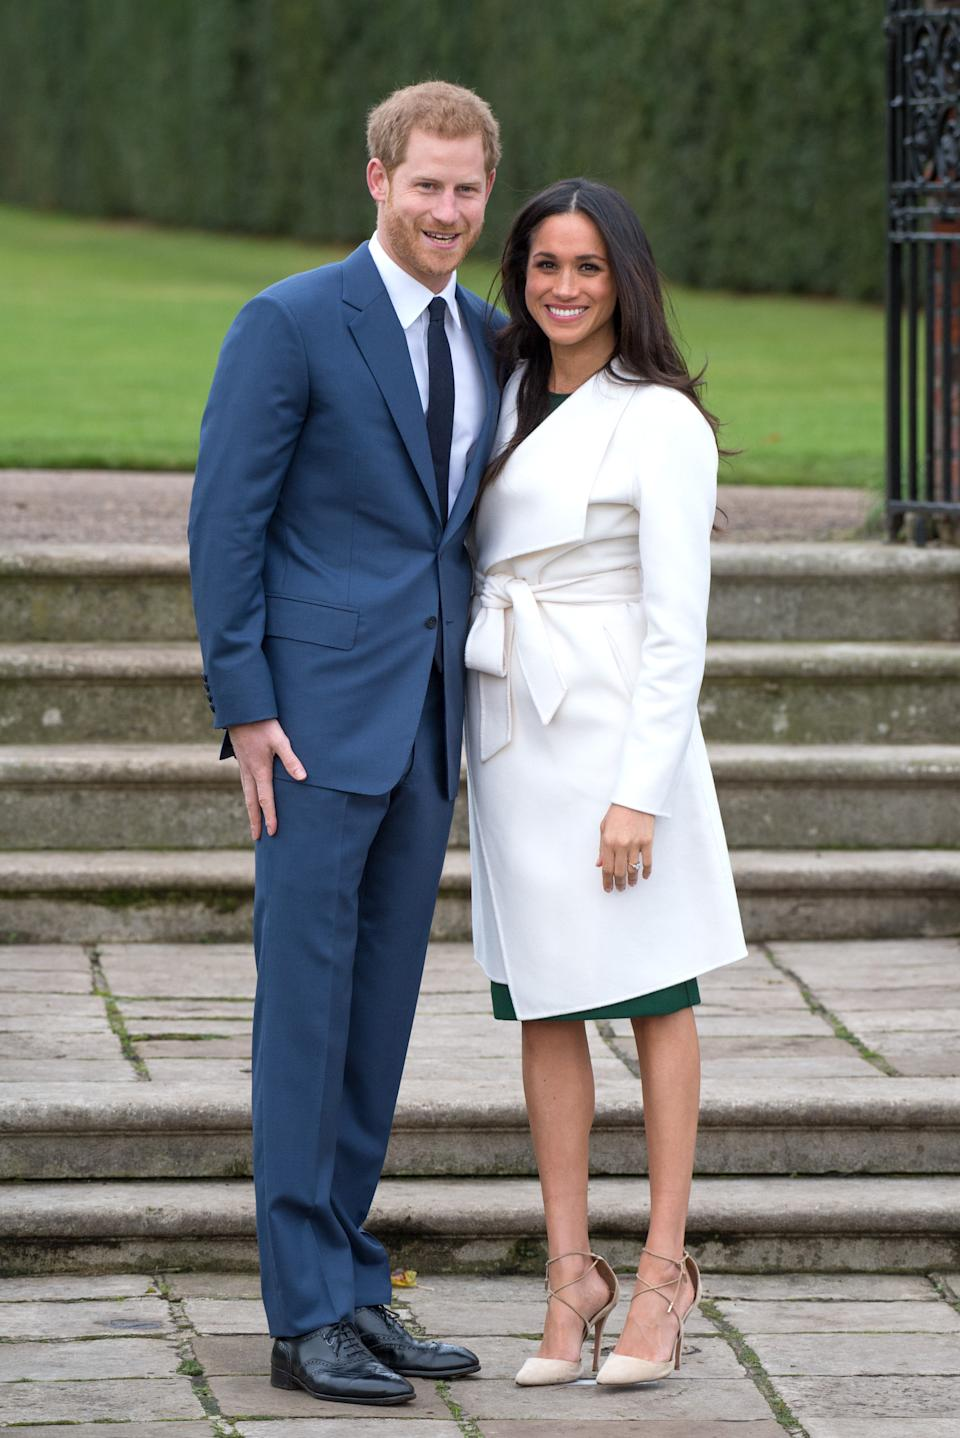 Just over one year later in November 2018, Markle wore a white belted coat by Canadian brand Line The Label during her and Prince Harry's photo-call announcing their engagement to the public. (Photo: Getty Images)